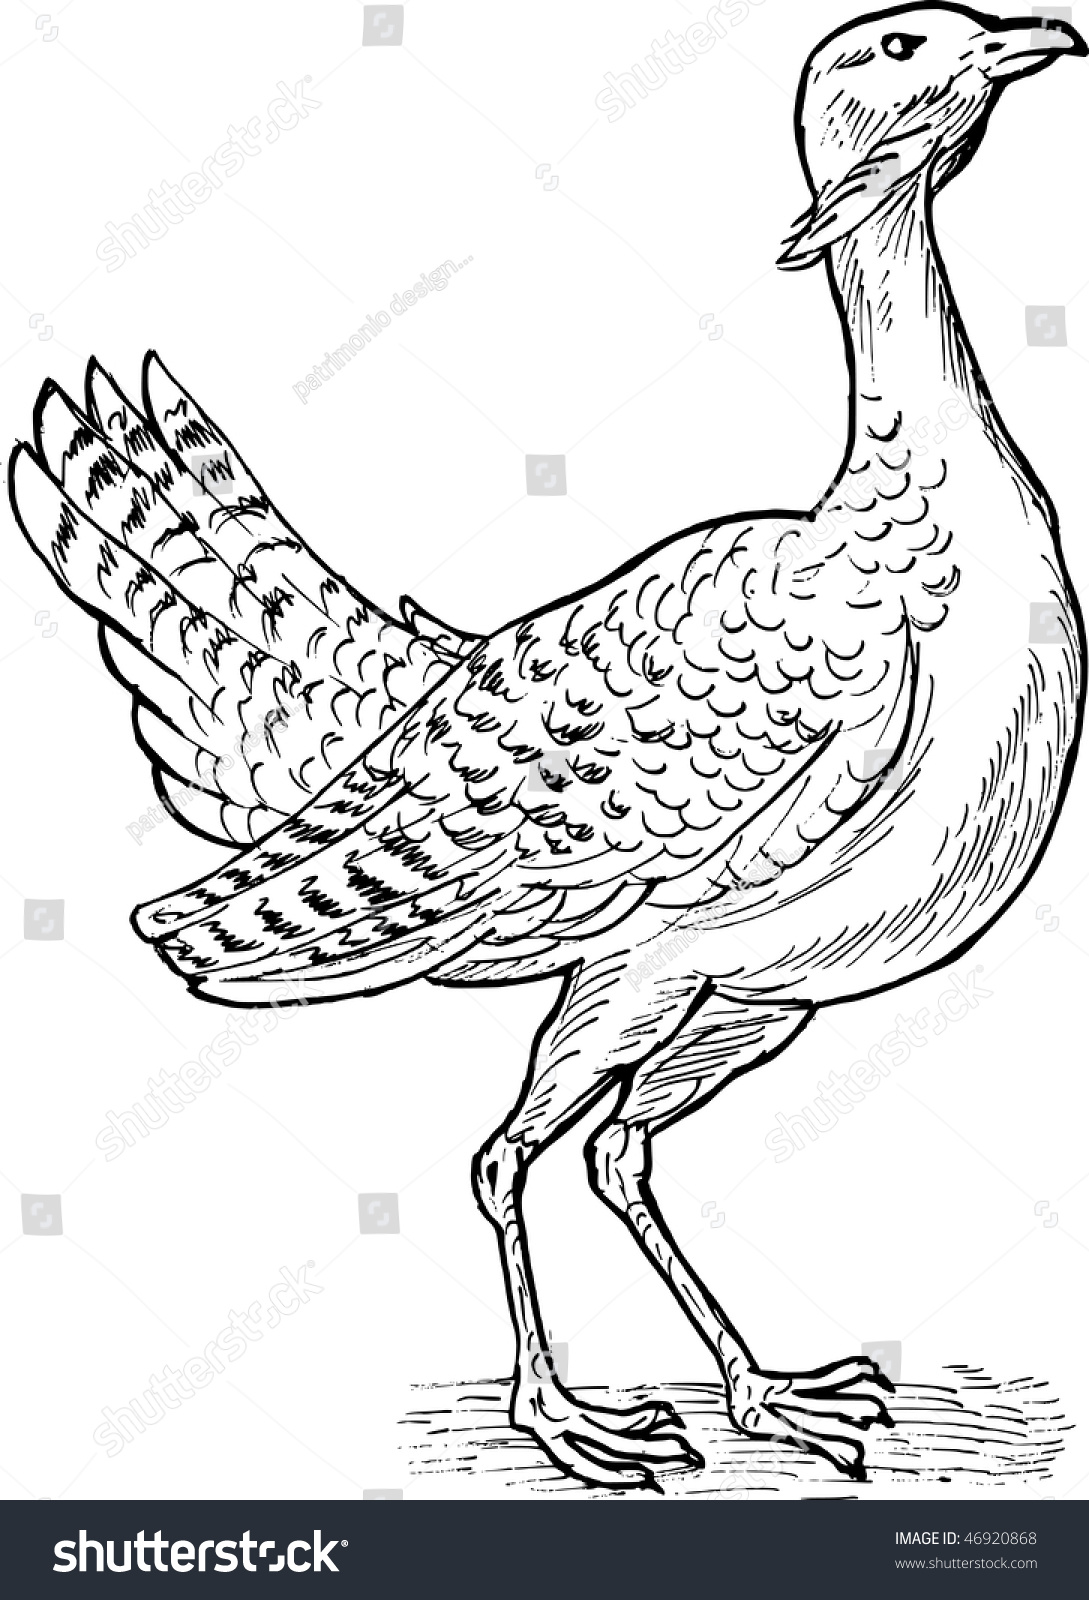 hand sketch drawing illustration of the great bustard bird